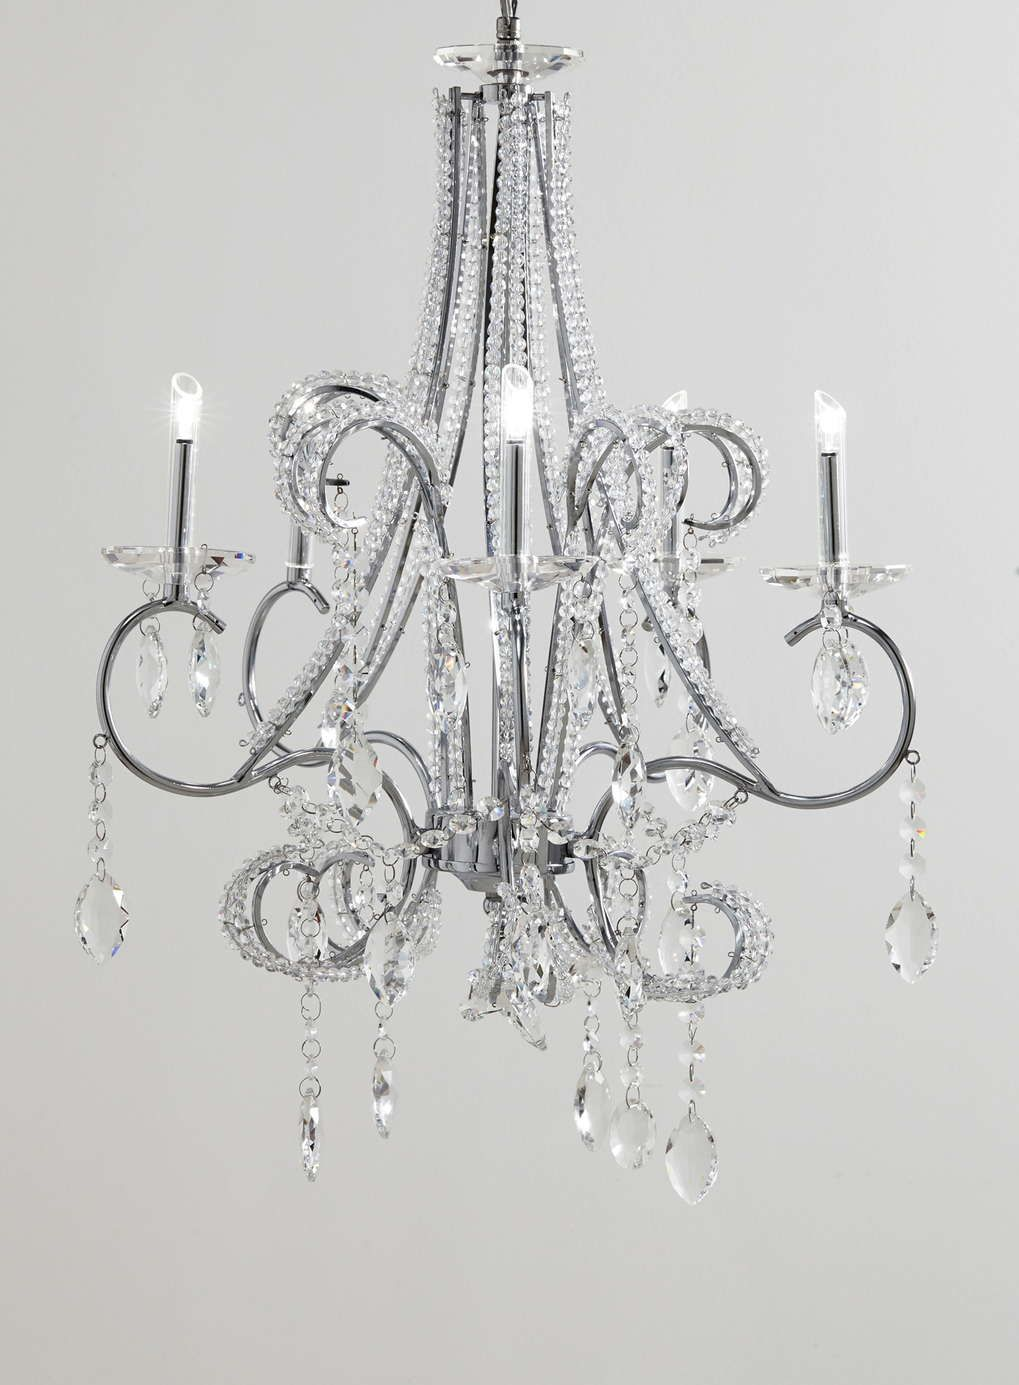 Isadora beaded chandelier bhs lighting pinterest bhs isadora beaded chandelier bhs arubaitofo Image collections